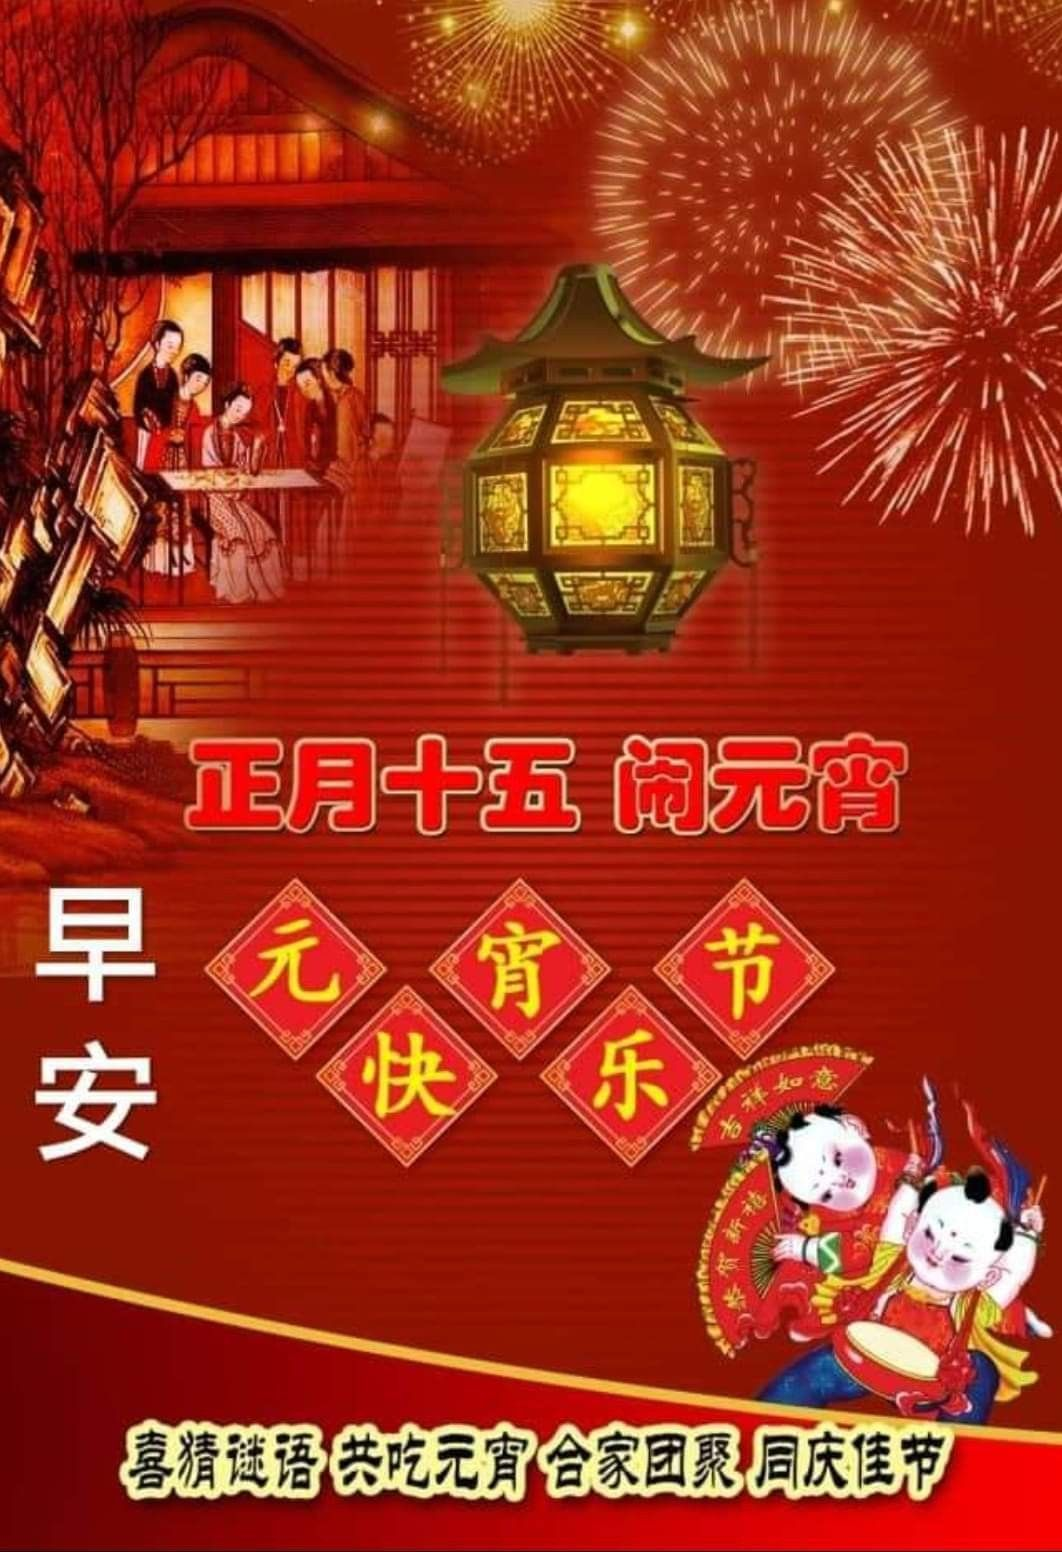 Pin by 玉珠 凃 on 過年節慶 Chinese new year greeting, Chinese